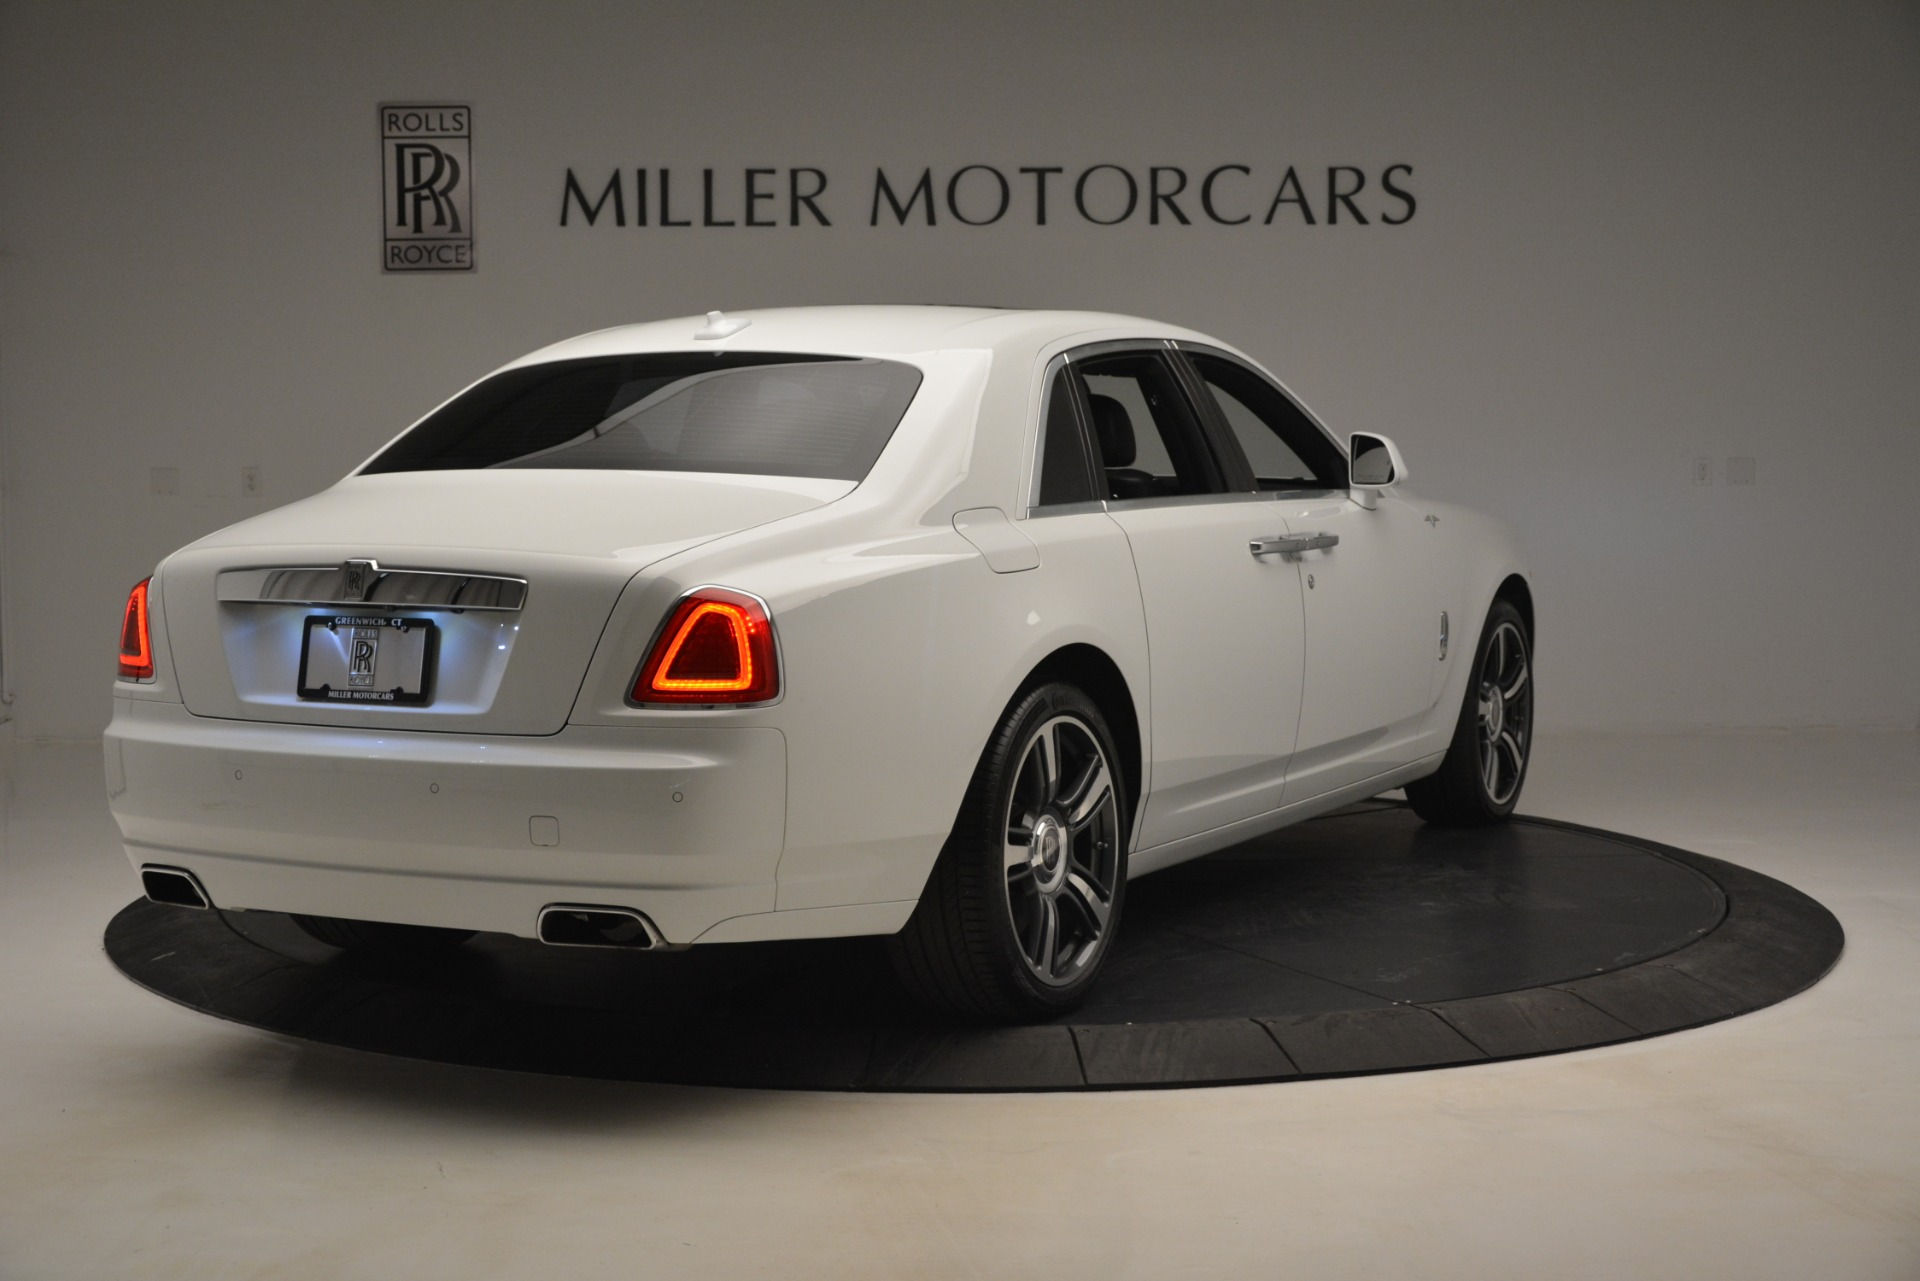 Used 2014 Rolls-Royce Ghost V-Spec For Sale In Westport, CT 2989_p8